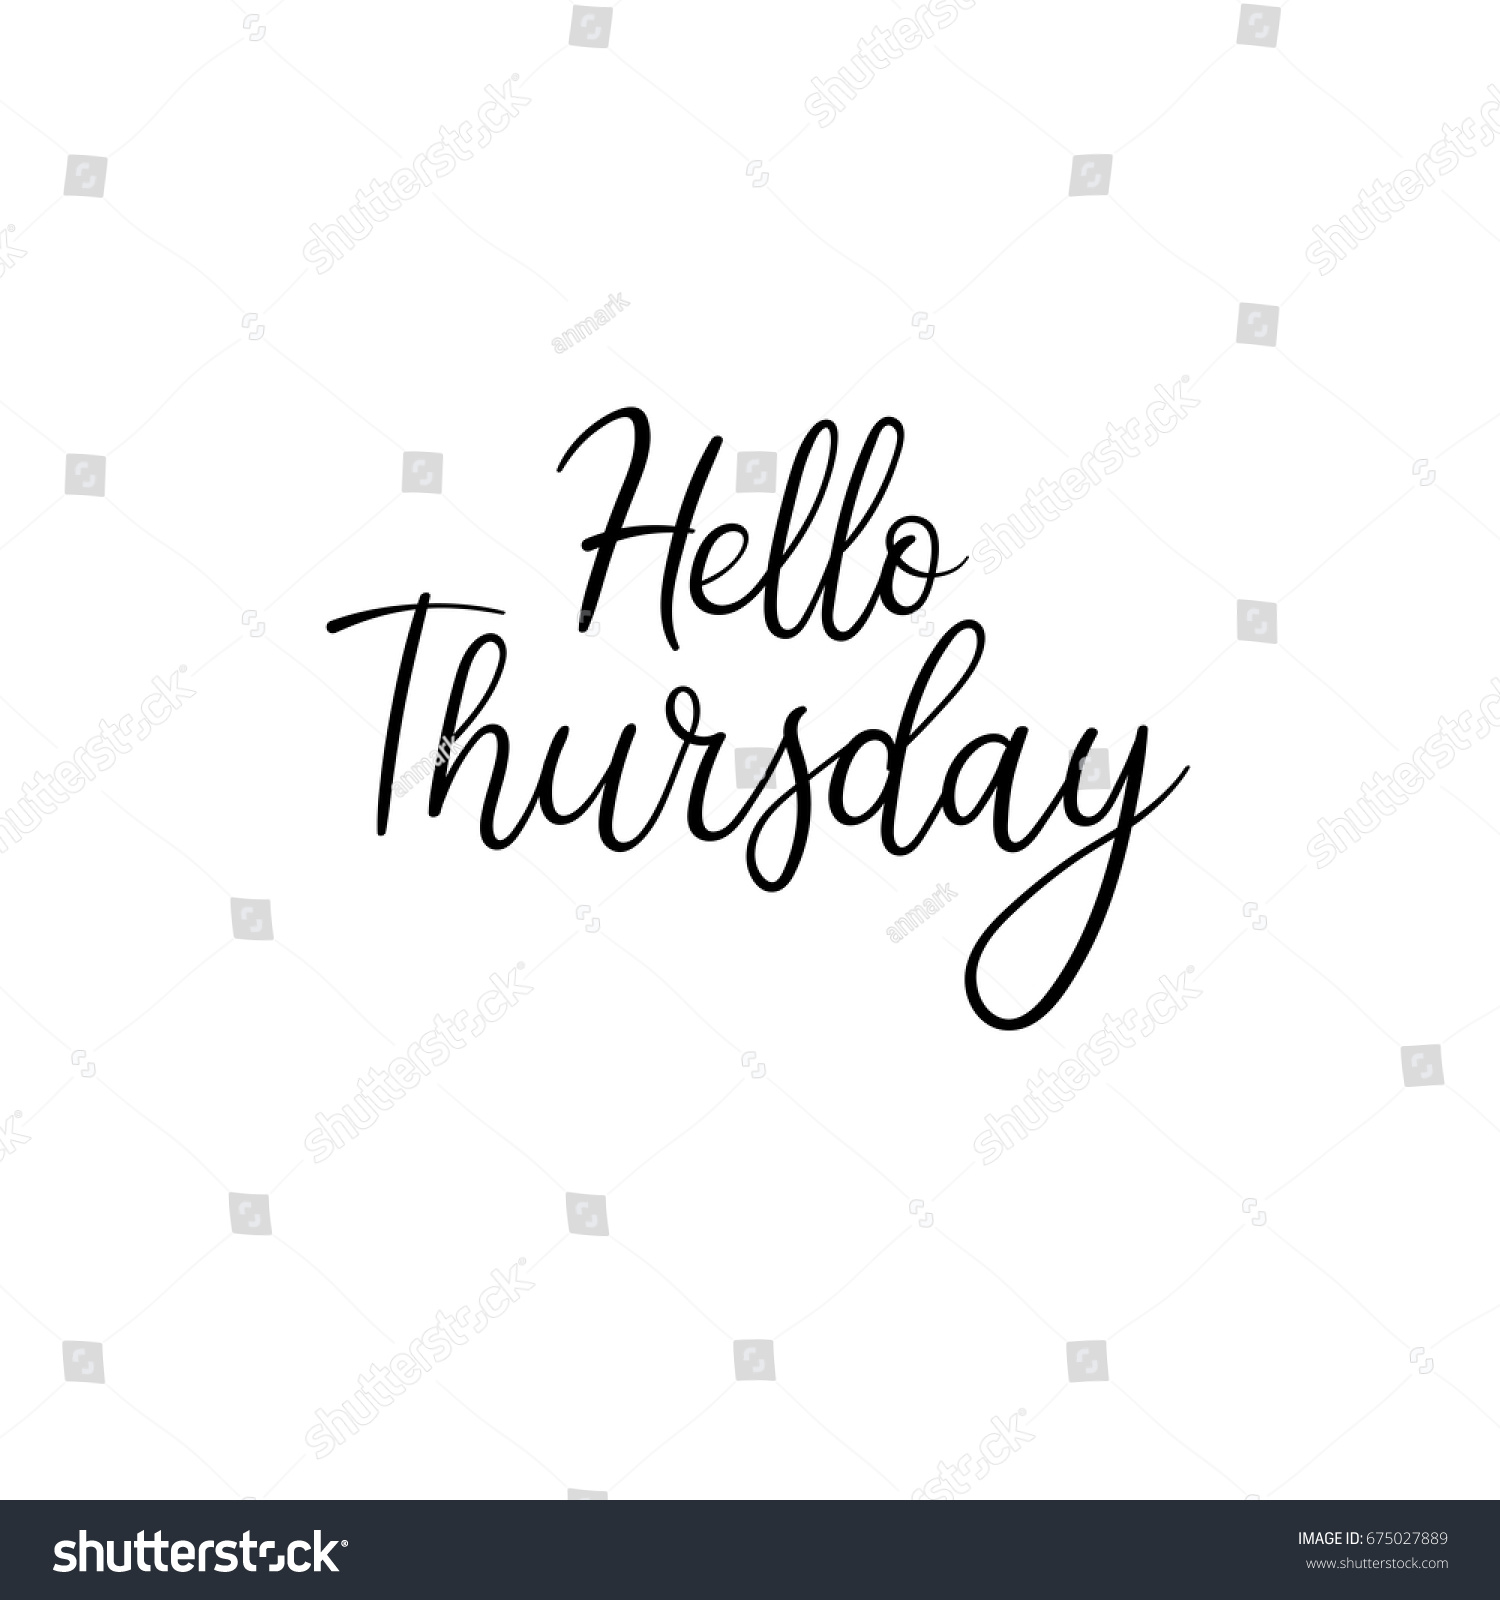 Hello Thursday Calligraphy Inscription Weekly Greeting Stock ...